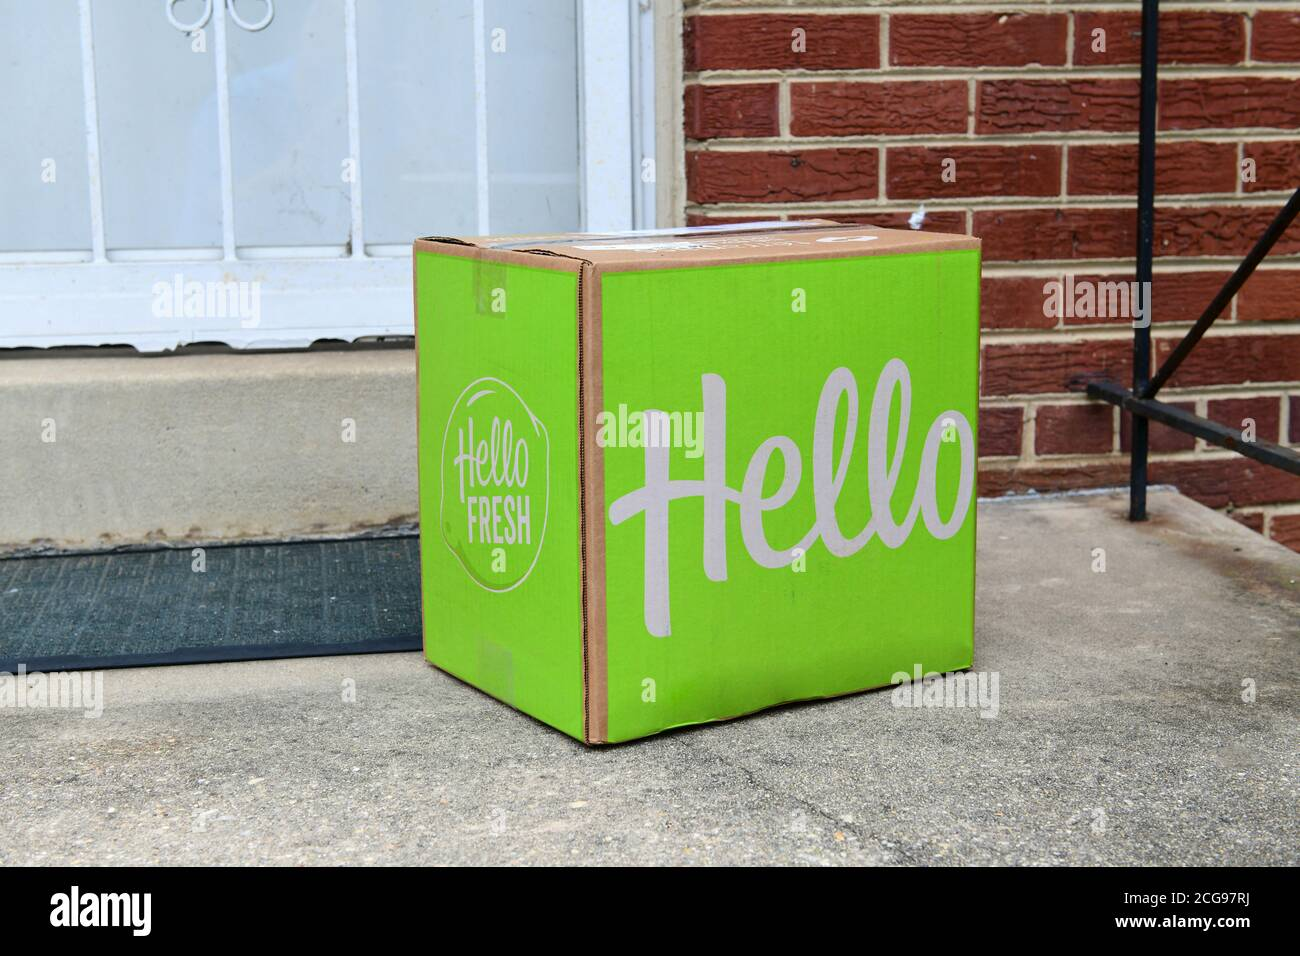 Hello Fresh meal kit box delivered to the front door of a house USA Stock Photo